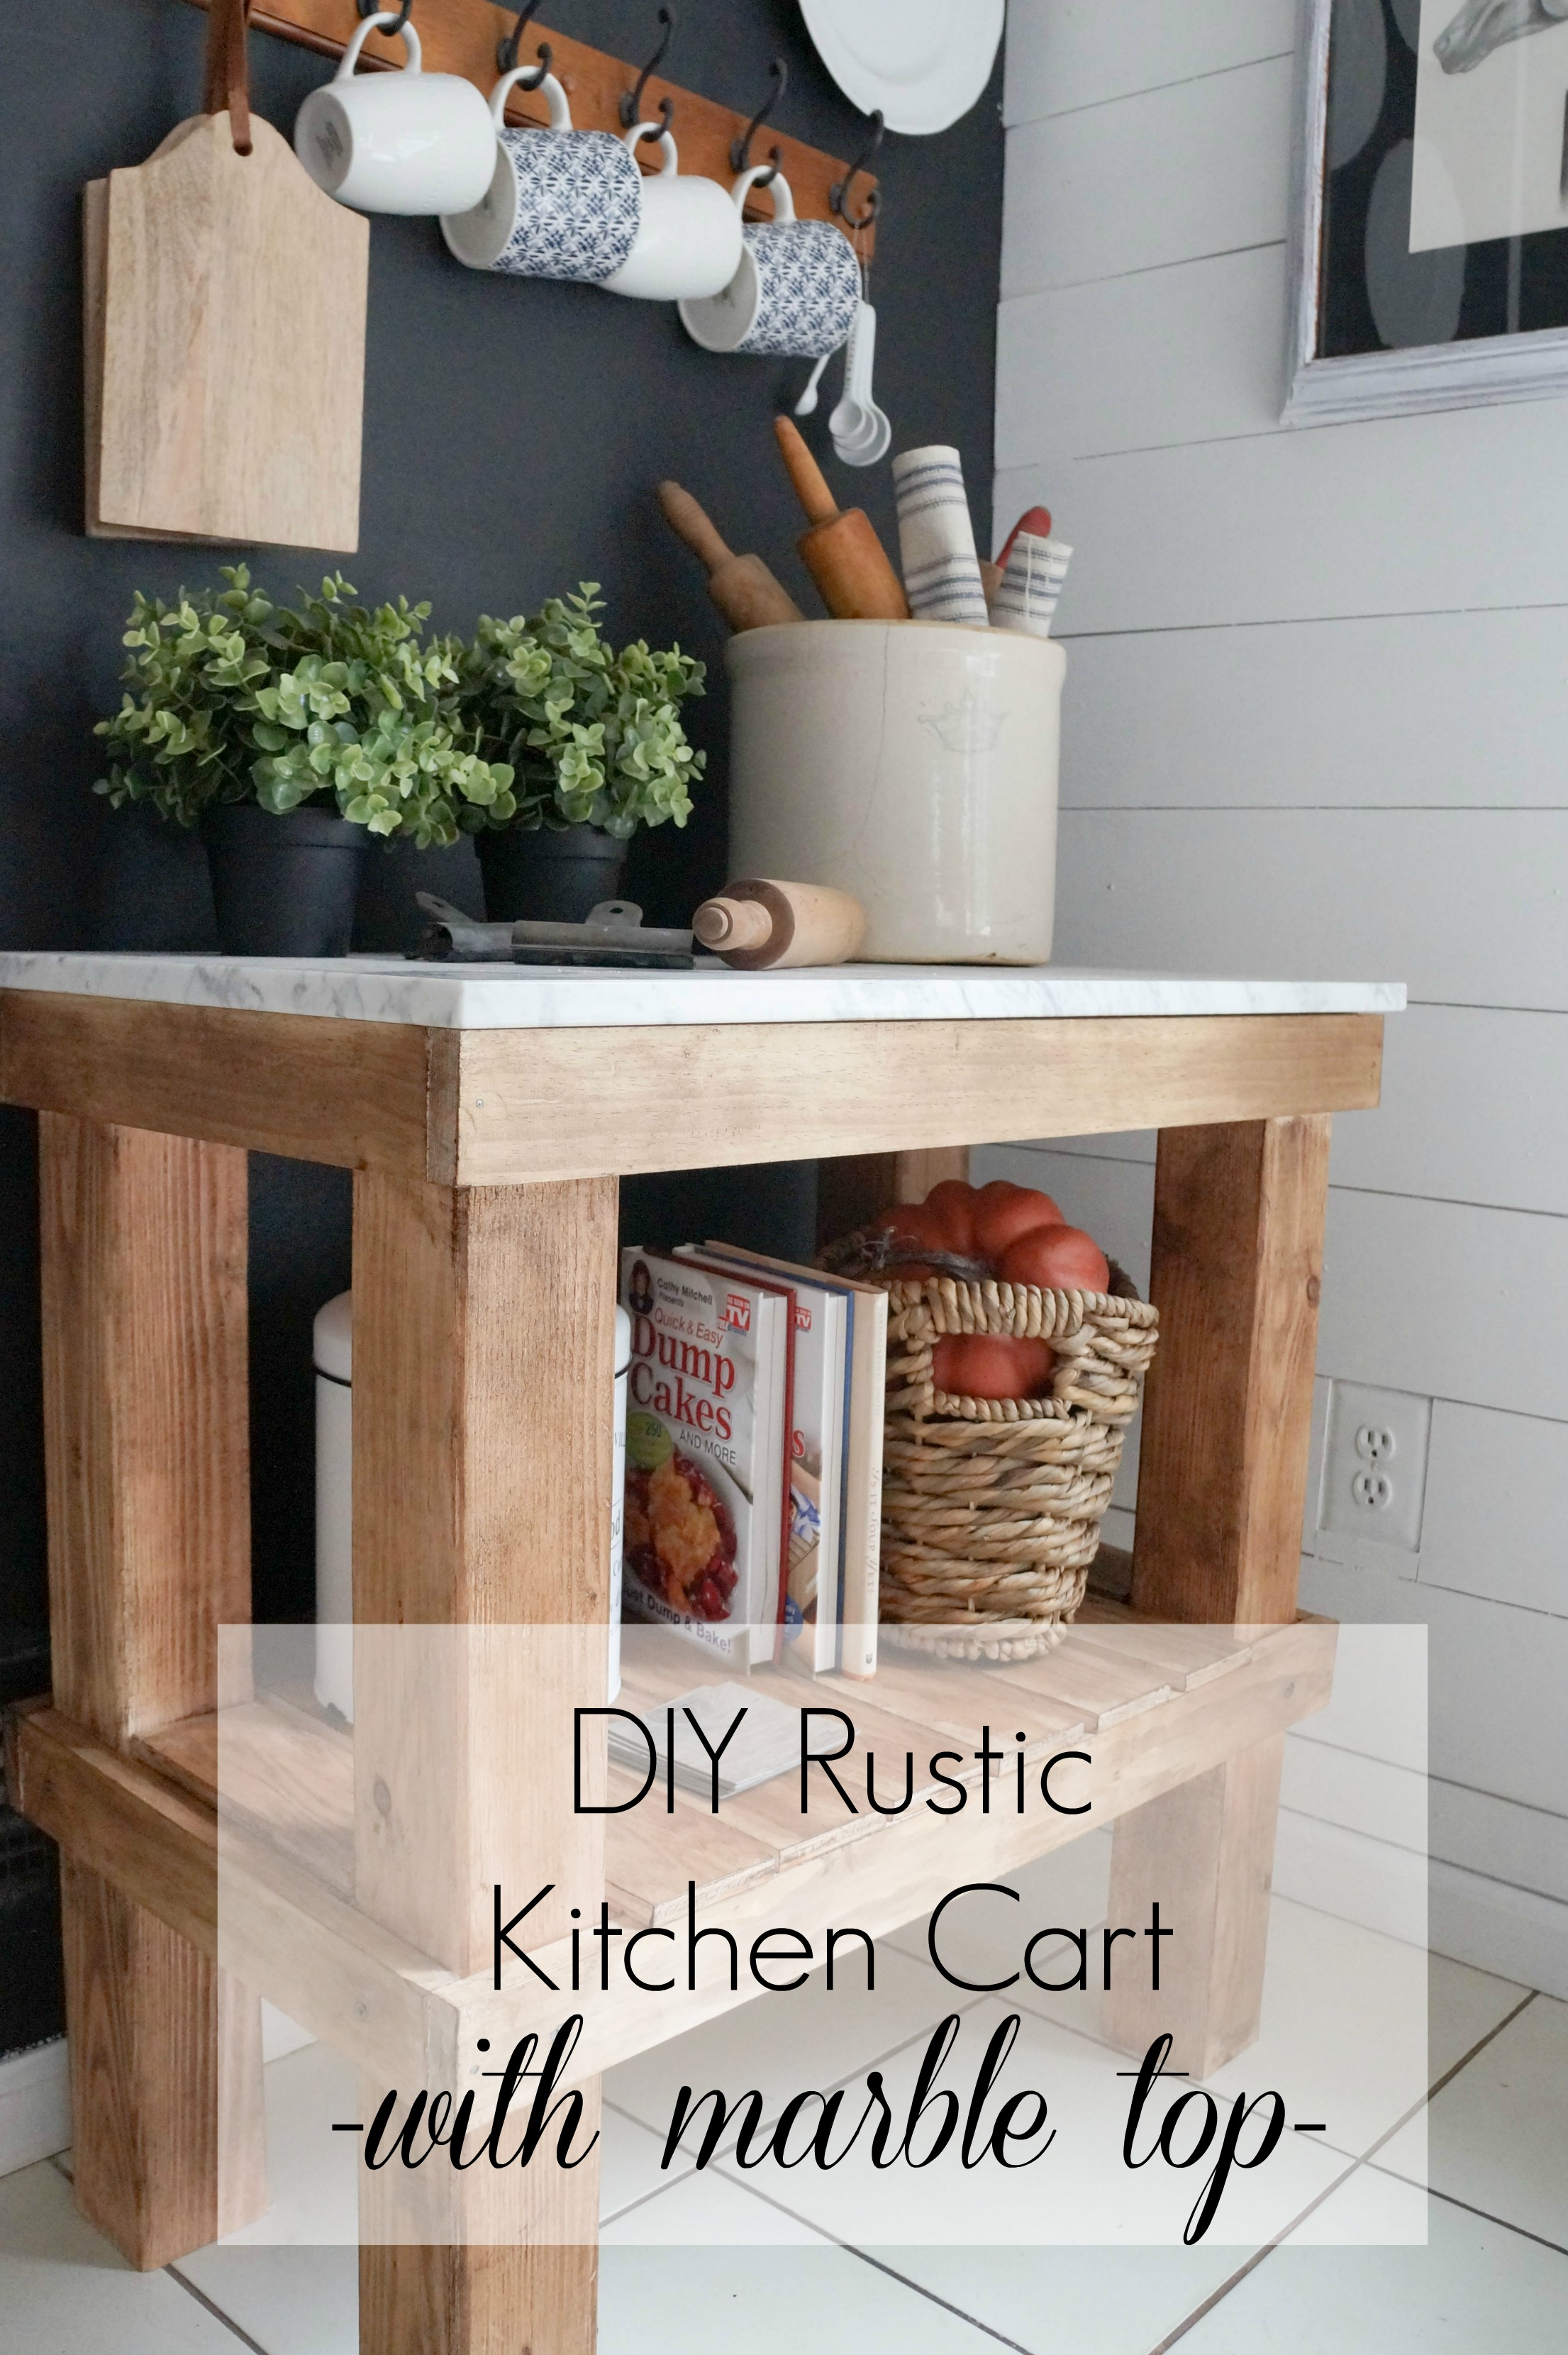 DIY Rustic Cart with Marble Top